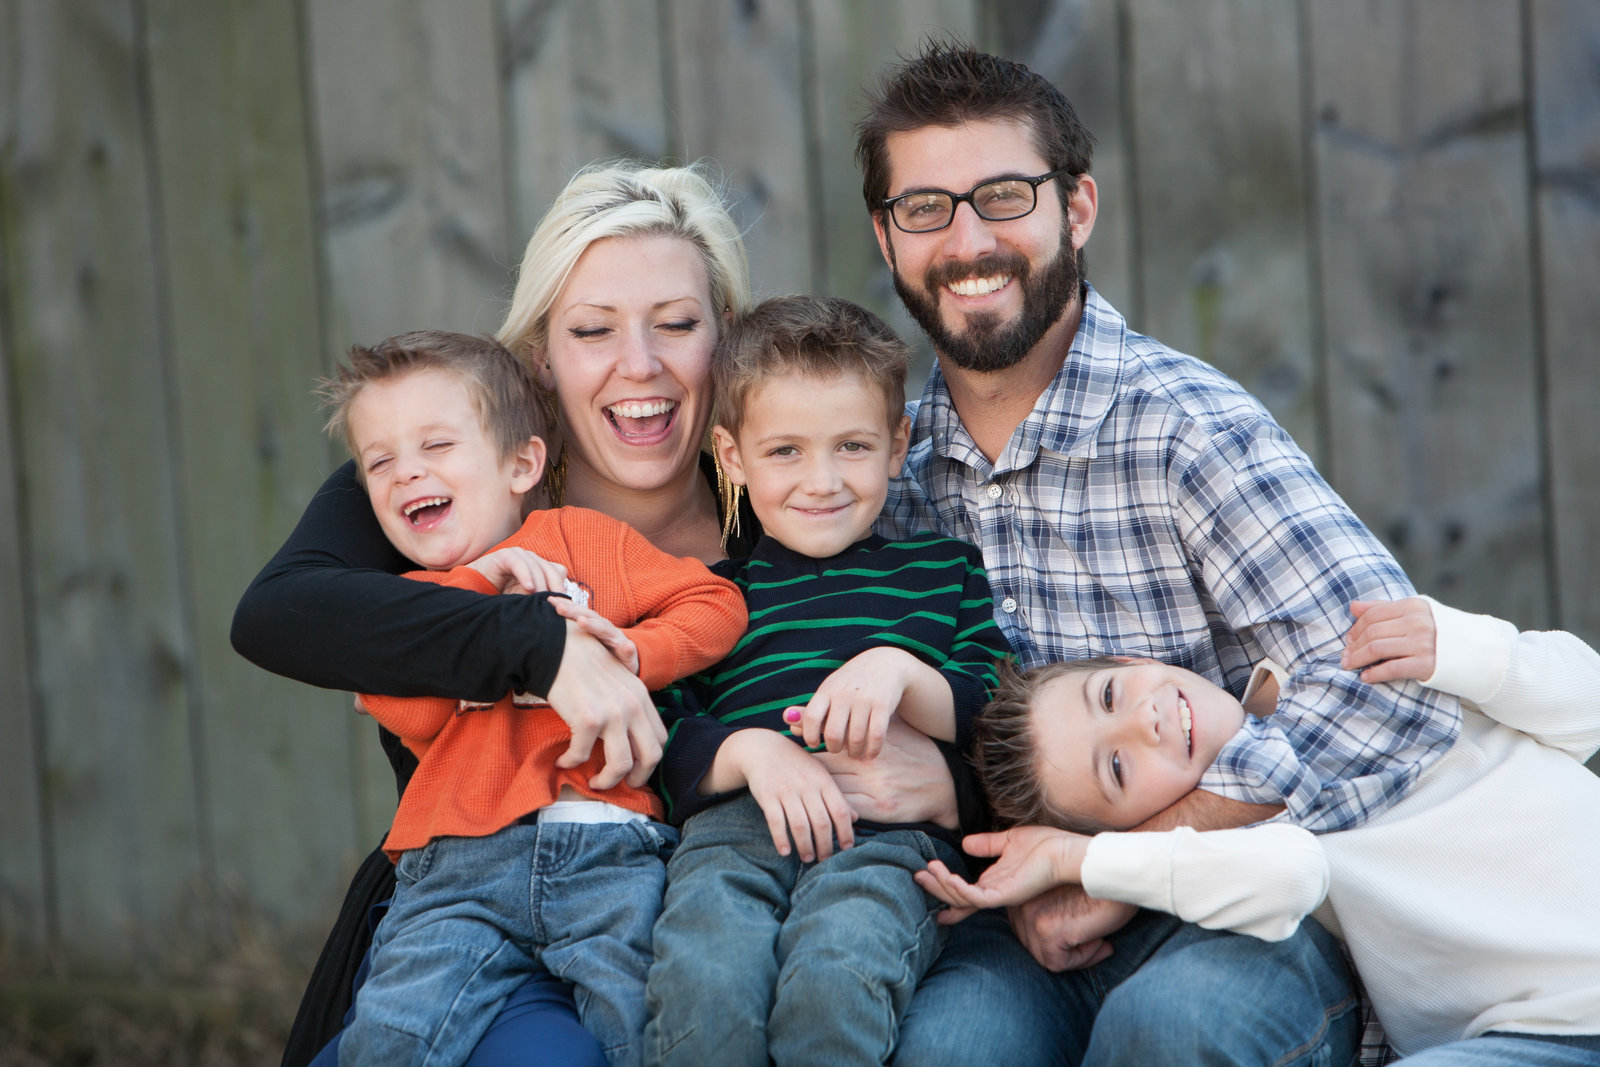 fun, casual outdoor family portrait photographer in the Hudson Valley NY